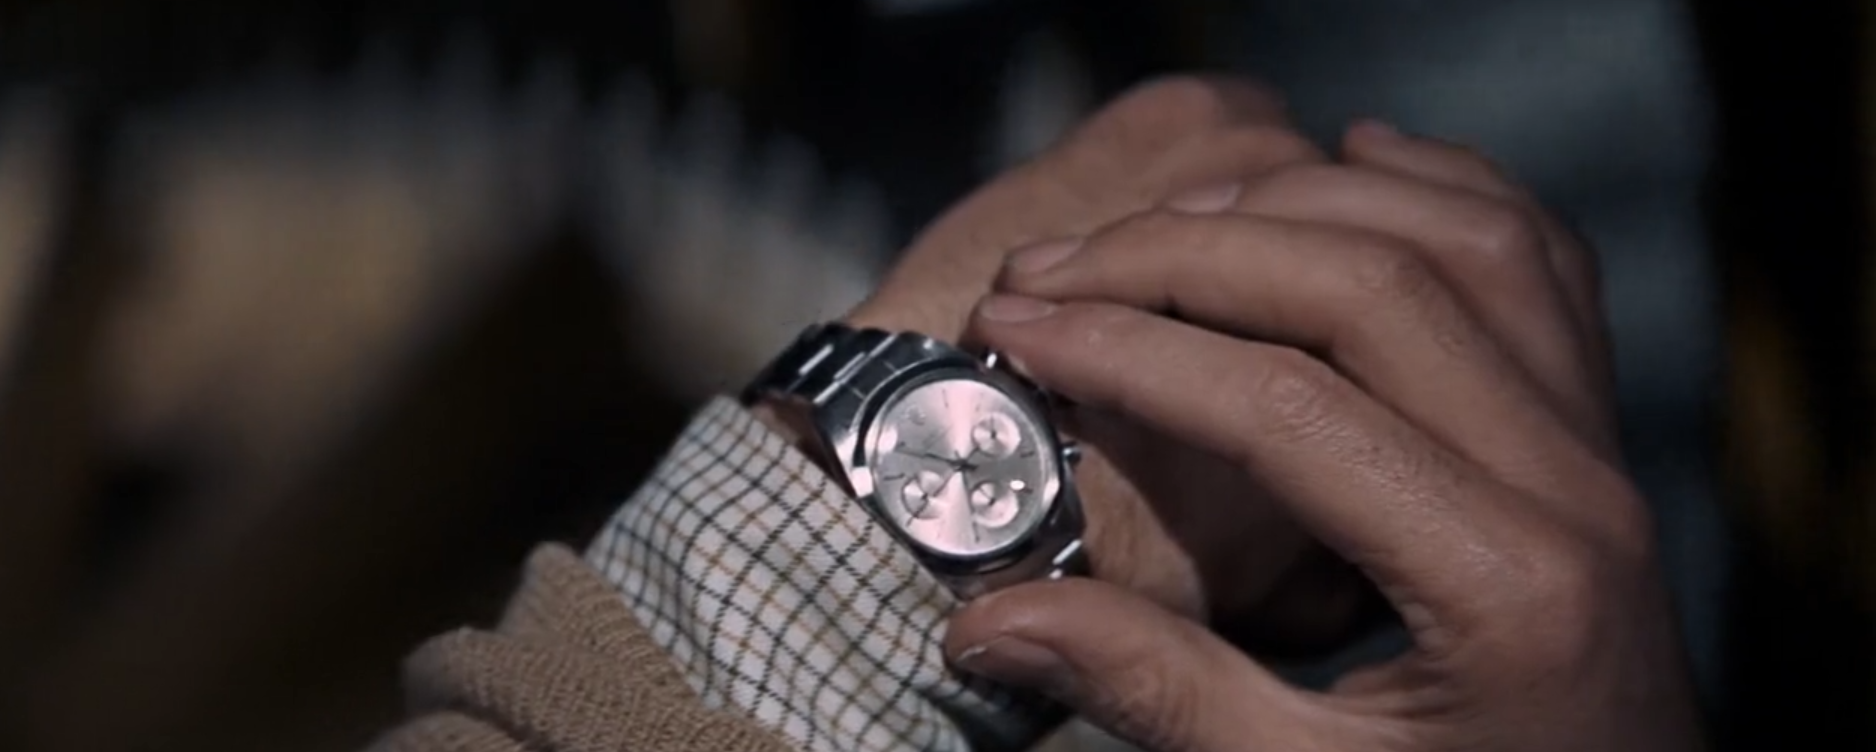 The first and only time a Rolex chronograph is seen in James Bond.